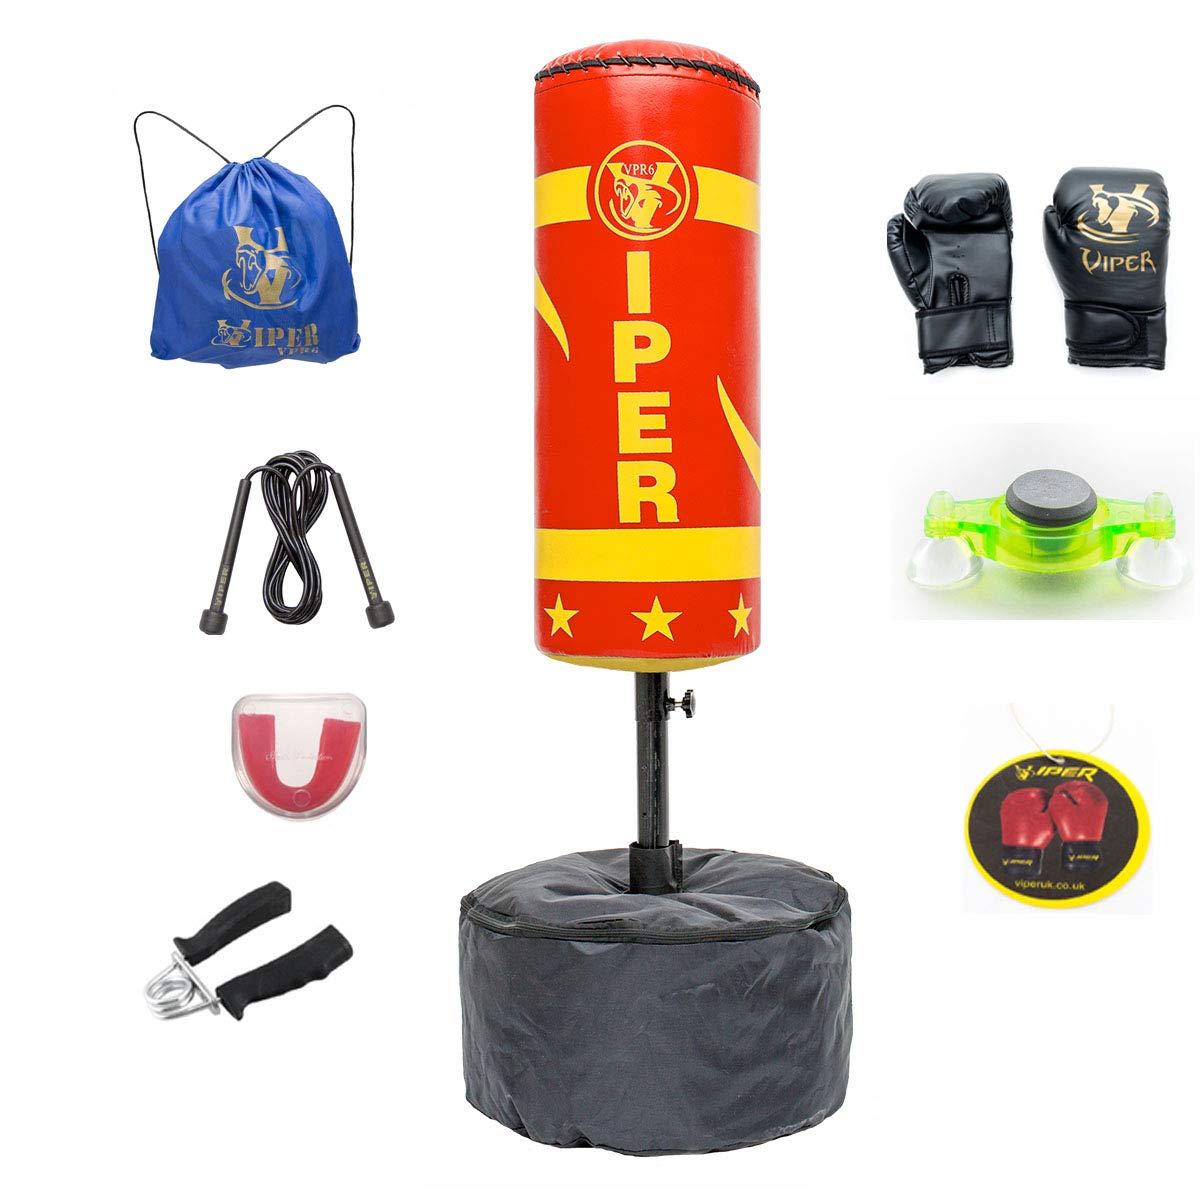 RED VIPER Free Standing Boxing Punching Bag Stand For Kids Target Heavy Duty Punch Bags Kickboxing MMA